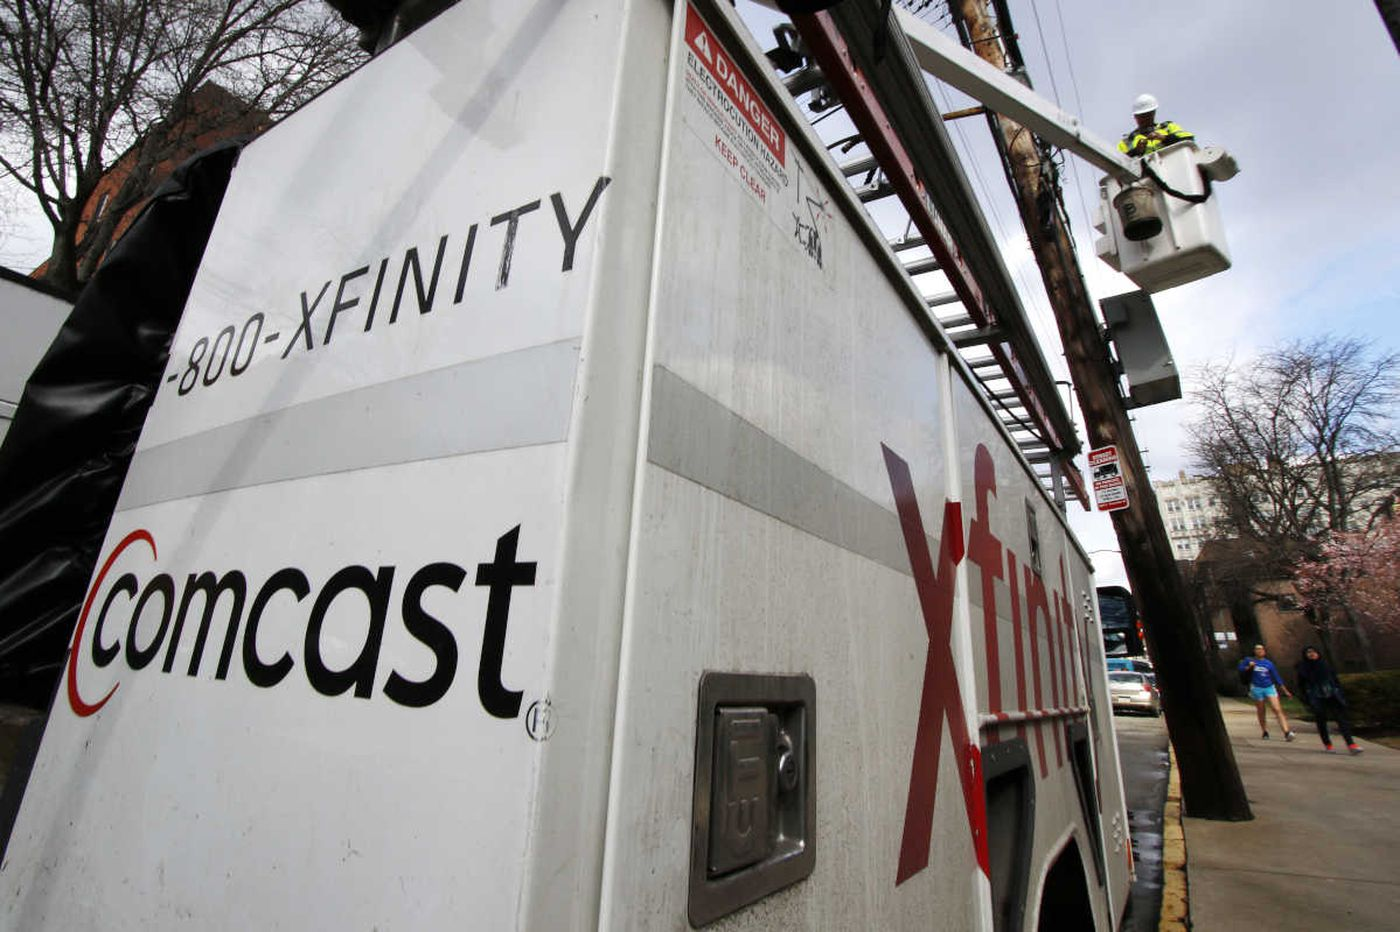 Comcast contractor to pay $7.5 million to settle lawsuit over unpaid overtime, labor law violations